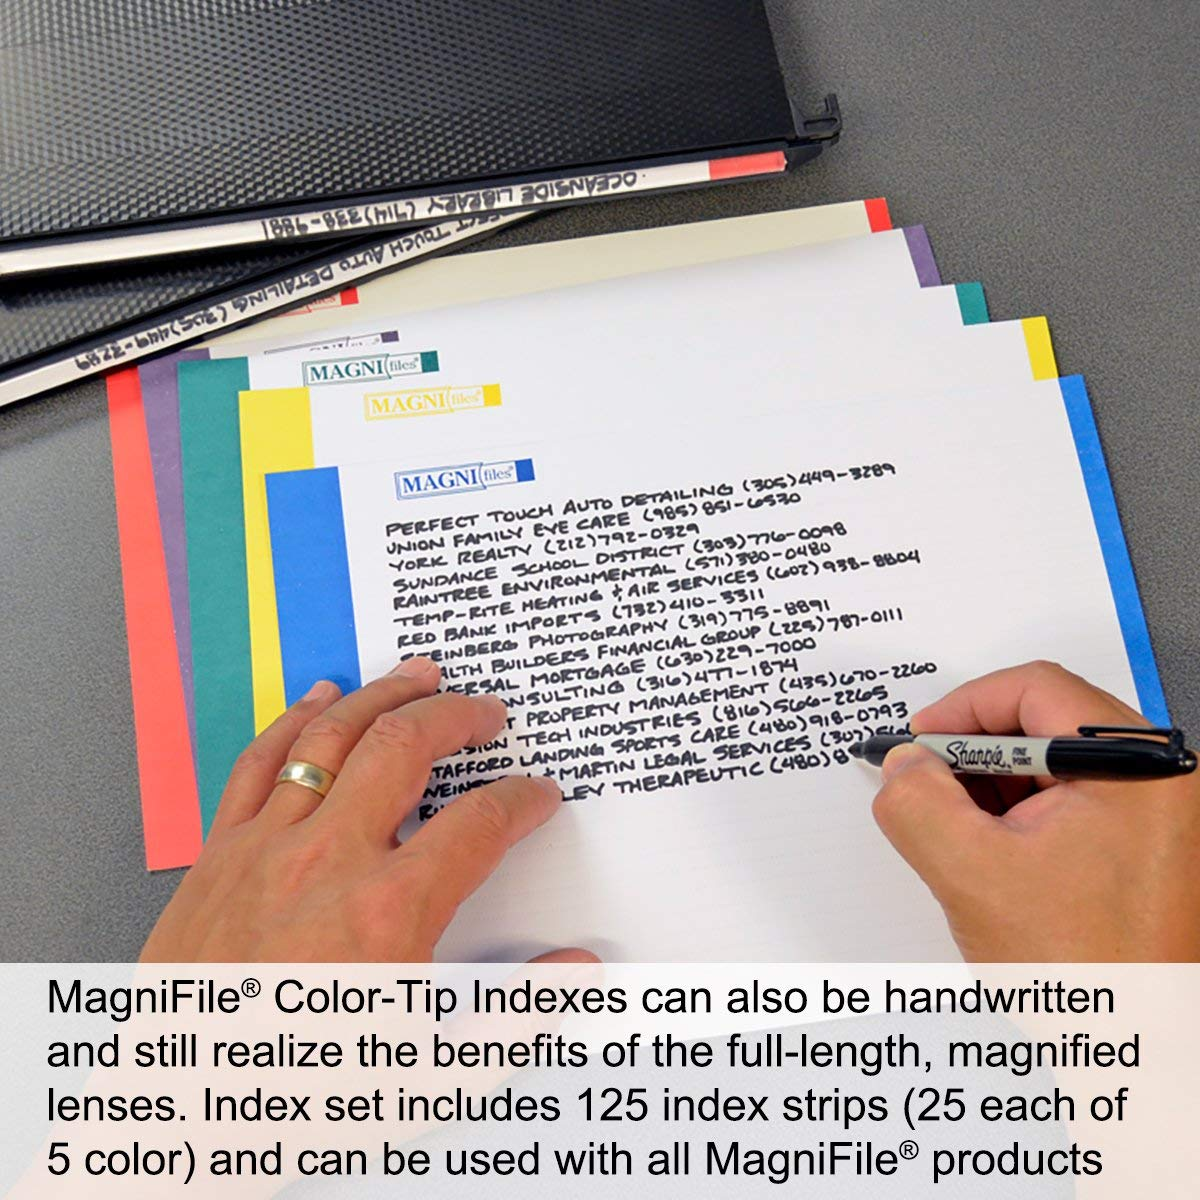 Ultimate Office MagniFile High-Capacity Hanging File Folders Set of 2 5 inch Expanding Files with Silicone Rubber Gussets and Sewn Nylon Edges